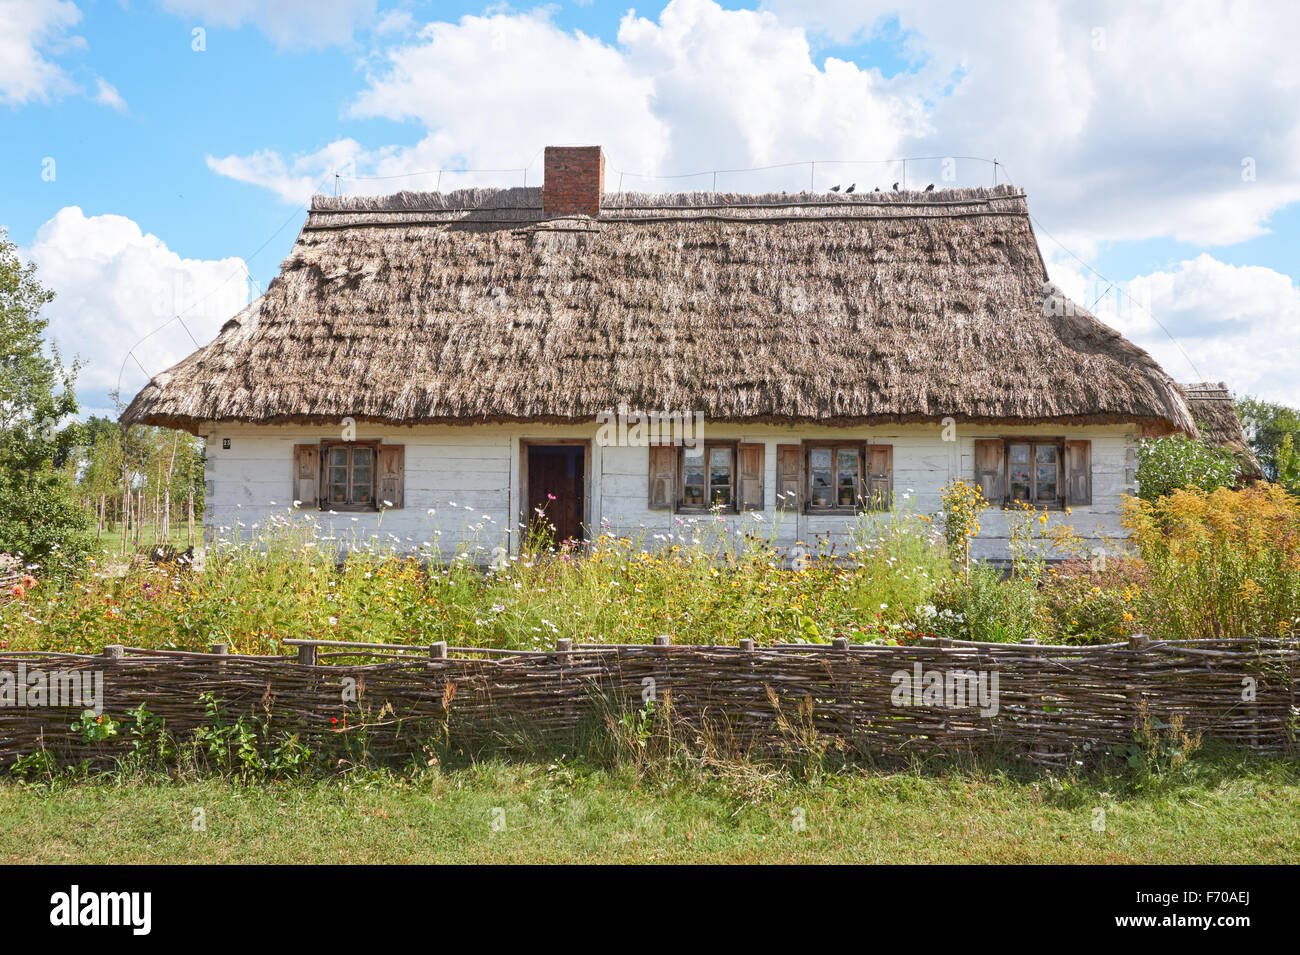 The Museum of the Mazovian Countryside in Sierpc, Poland. 19th century wooden thatched farmhouse. - Stock Image